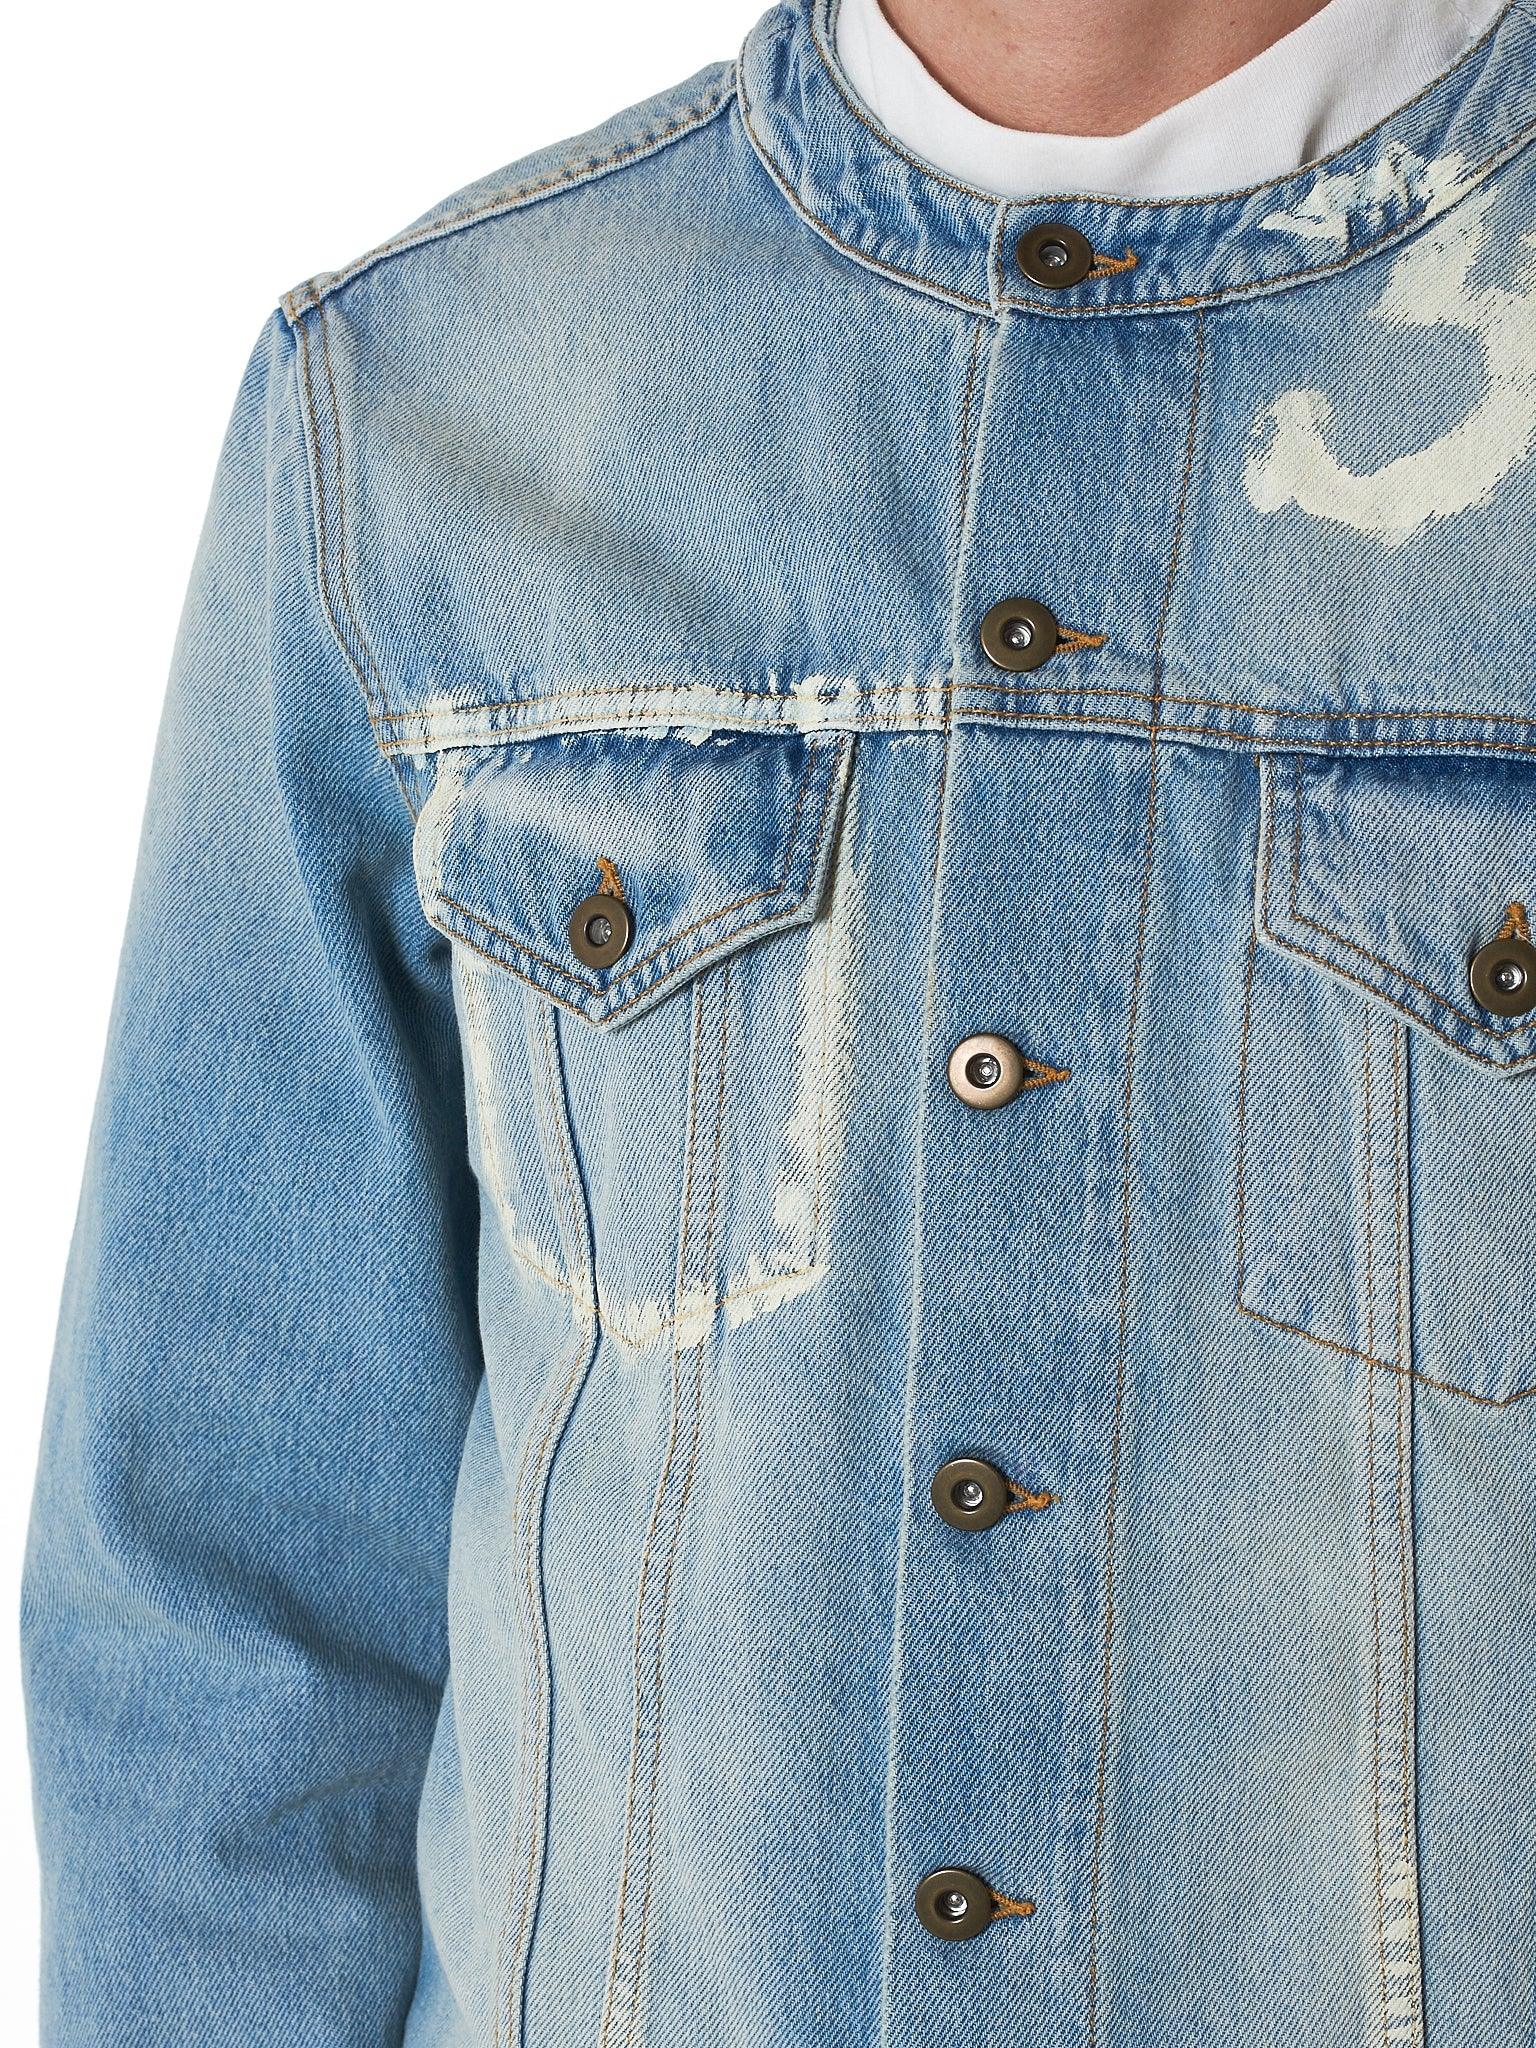 IH NOM UH NIT Denim Jacket - Hlorenzo Detail 3